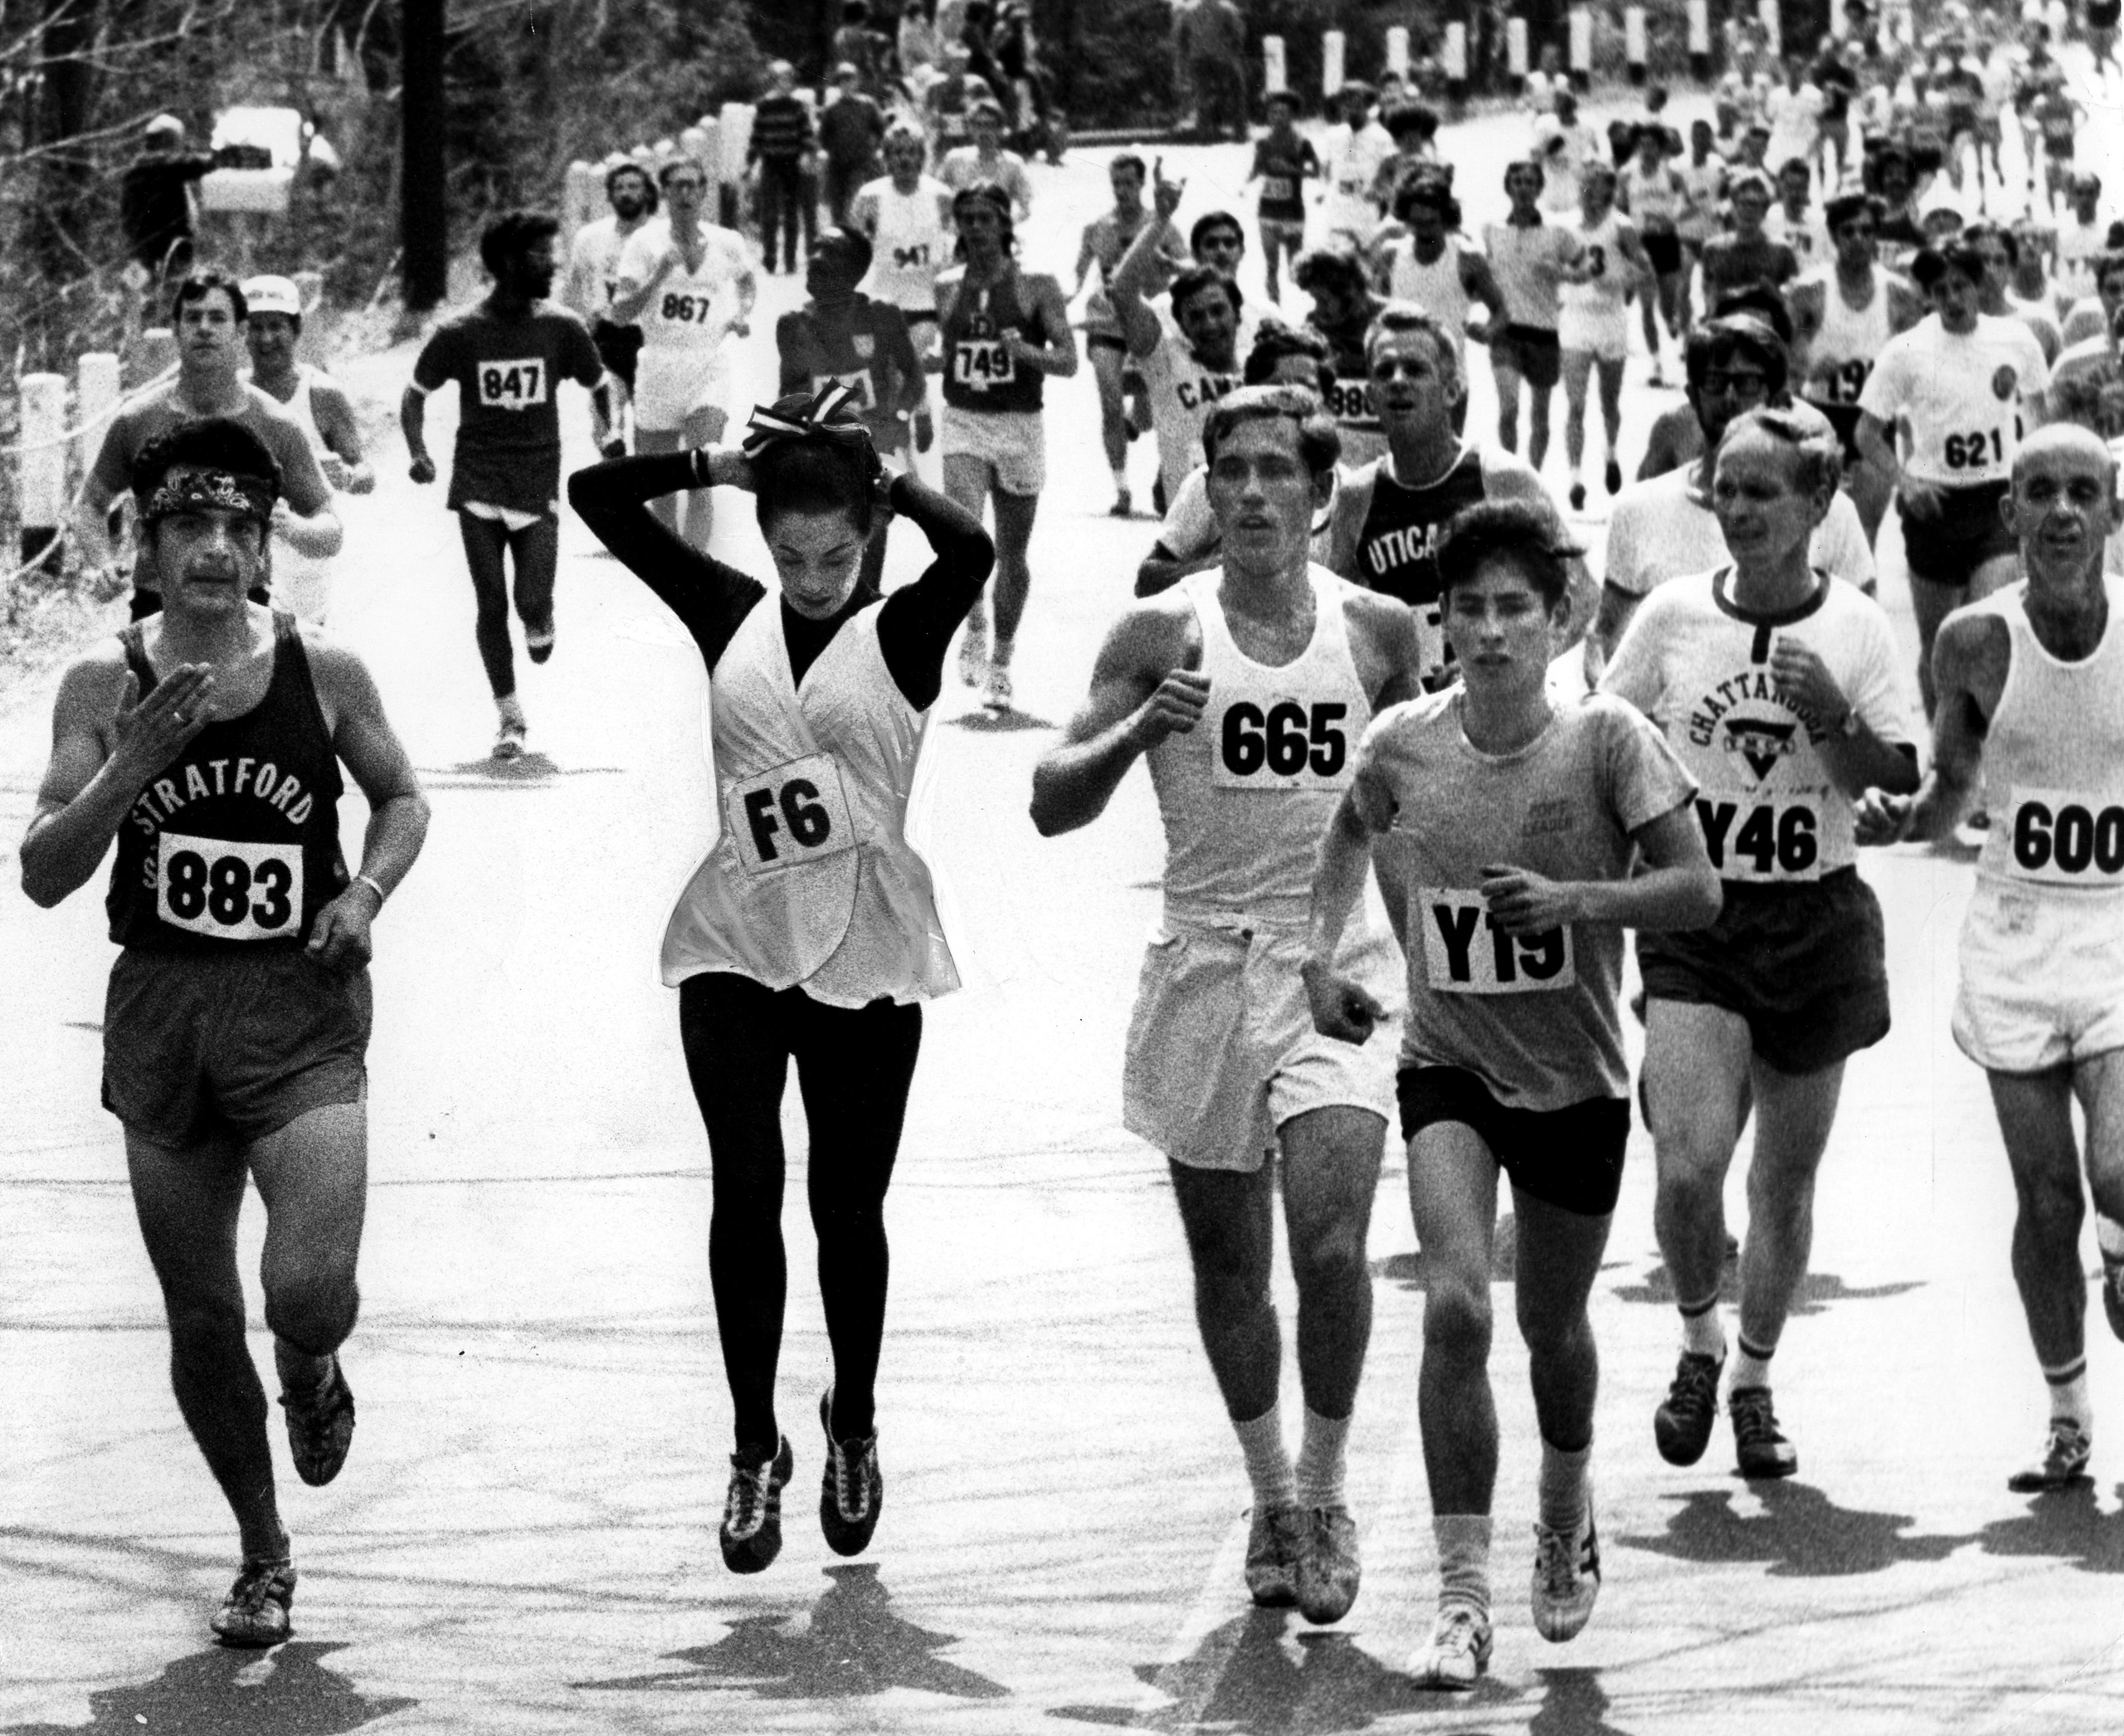 Kathy Switzer Miller running the Boston Marathon on April 17, 1972.